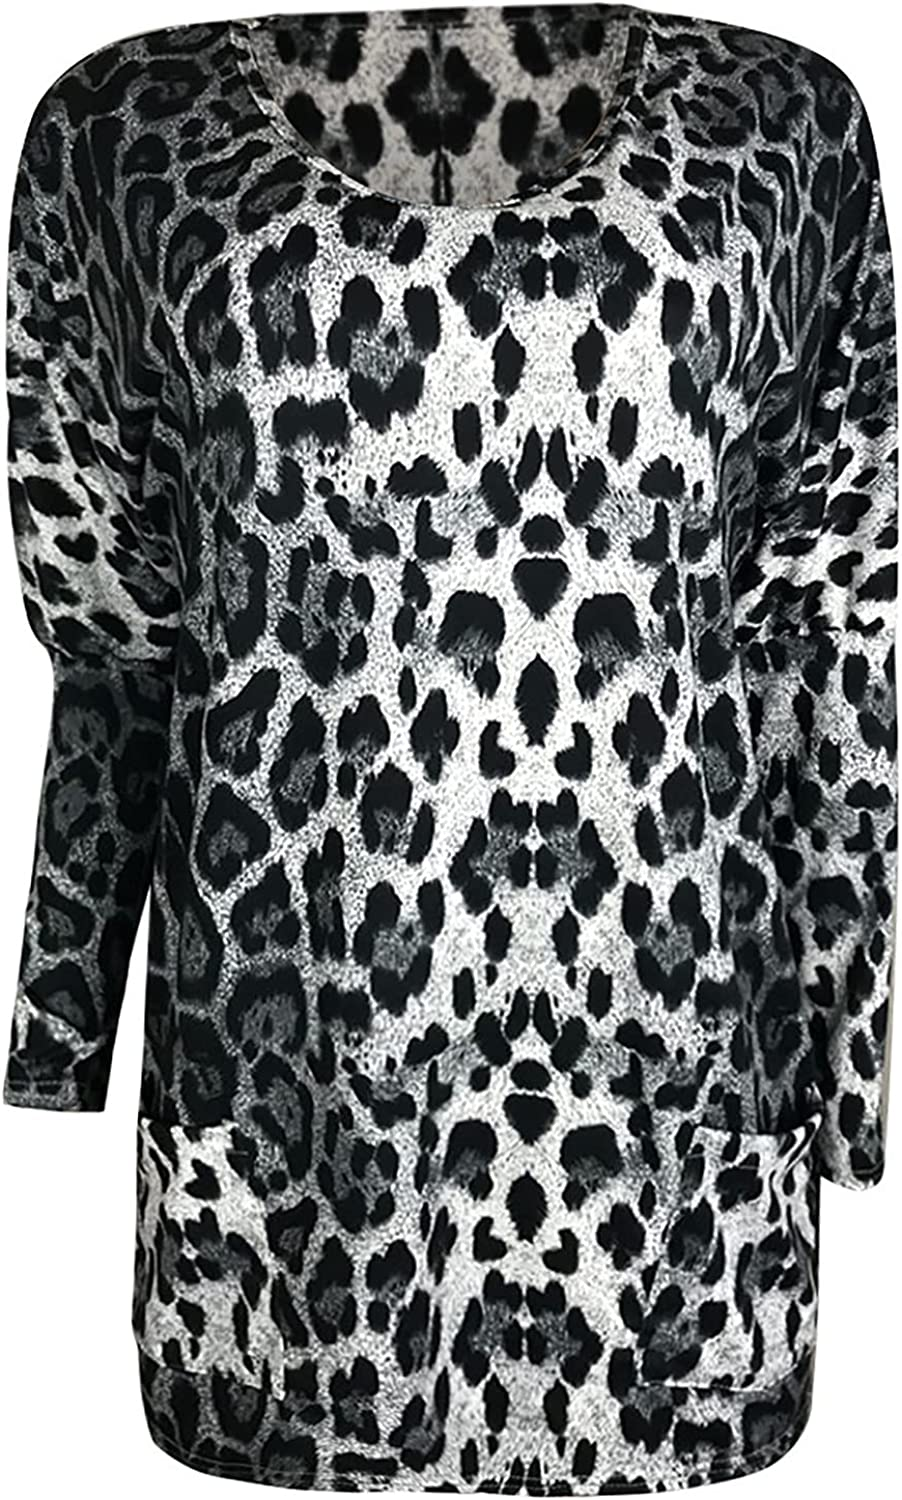 SHOPESSA Leopard Tunic Shirts for Women Casual Long Sleeve Tops with Pockets V-Neck Long Flowy Pullover Blouses